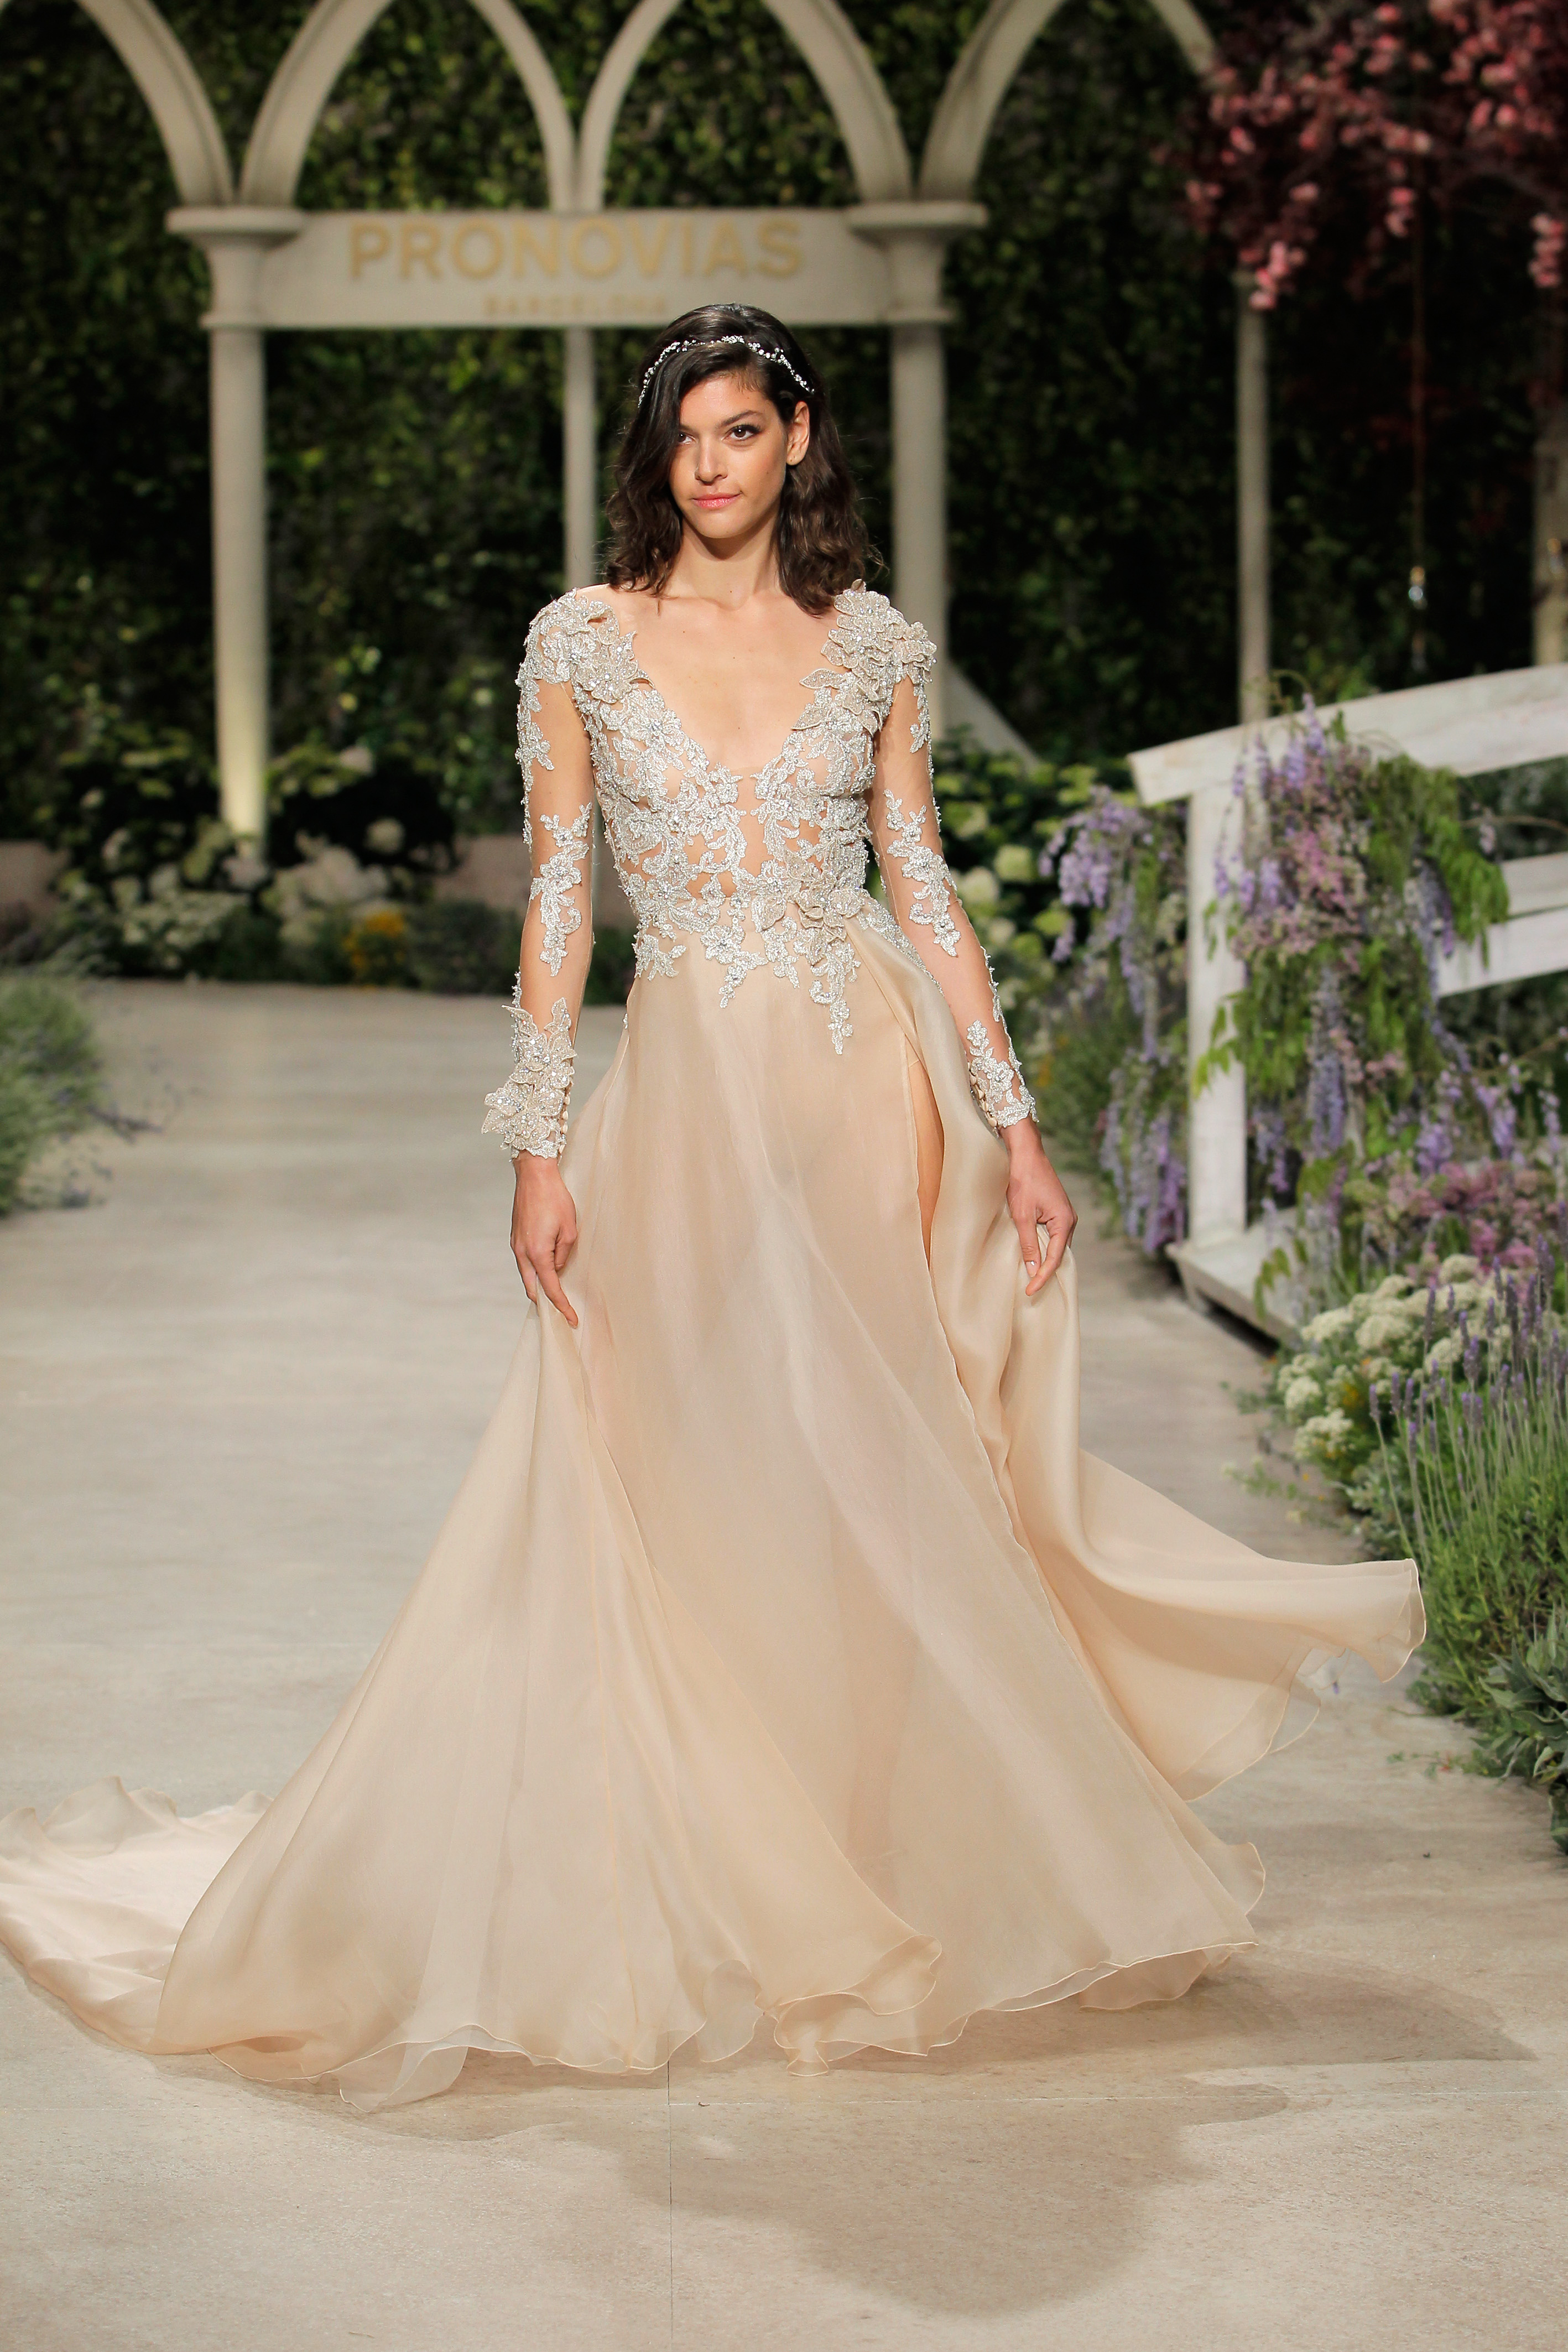 pronovias wedding dress spring 2019 peach embroidered long sleeve